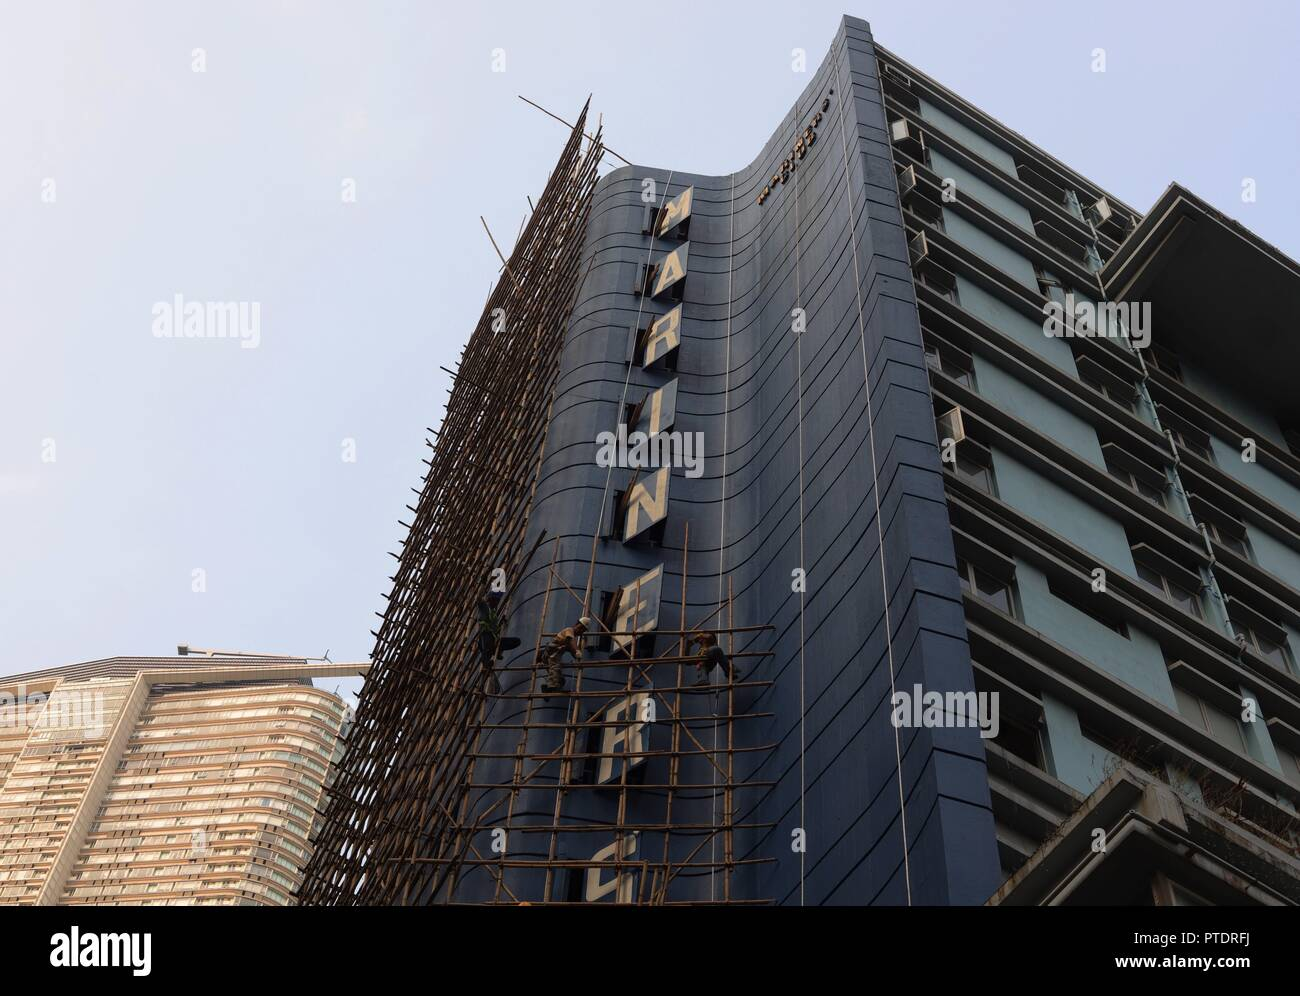 Hong Kong, CHINA. 9th Oct, 2018. Hong Kong bamboo scaffolding engineers ( workers ) constructing a bamboo scaffolding along hotels outer wall, a hotel which is to be demolished soon. Hong Kong is a place where old method of bamboo scaffoldings are being kept as a Chinese traditional architectural craft, the scene of scaffolding engineers working on the bamboo scaffolding often surprise foreign tourists who visit Hong Kong.Oct-9, 2018 Hong Kong.ZUMA/Liau Chung-ren Credit: Liau Chung-ren/ZUMA Wire/Alamy Live News - Stock Image